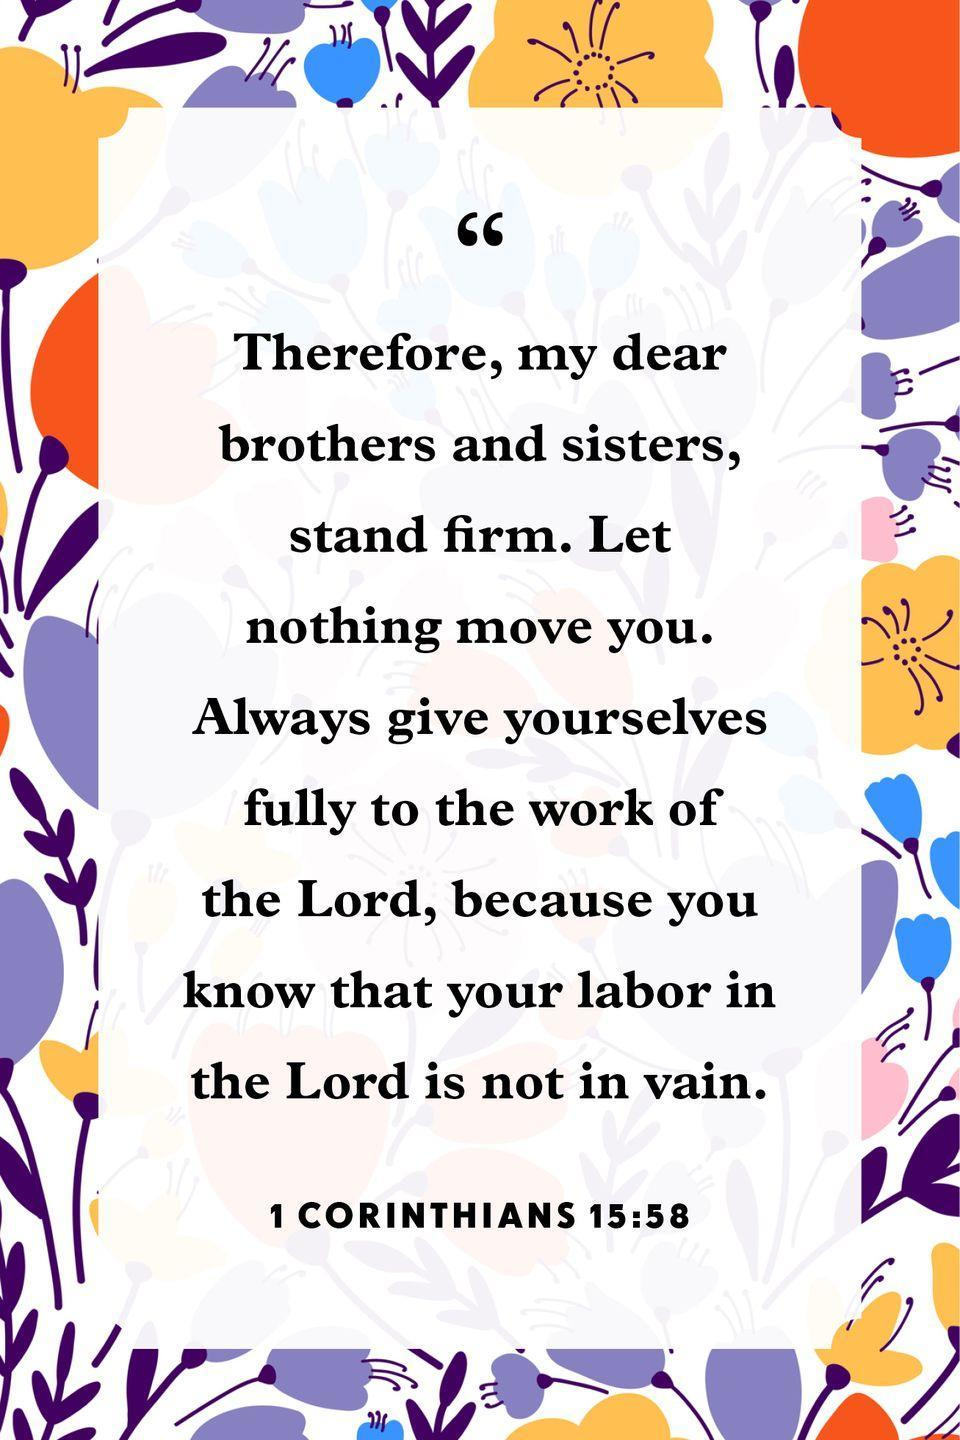 "<p>""Therefore, my dear brothers and sisters, stand firm. Let nothing move you. Always give yourselves fully to the work of the Lord, because you know that your labor in the Lord is not in vain.""</p>"